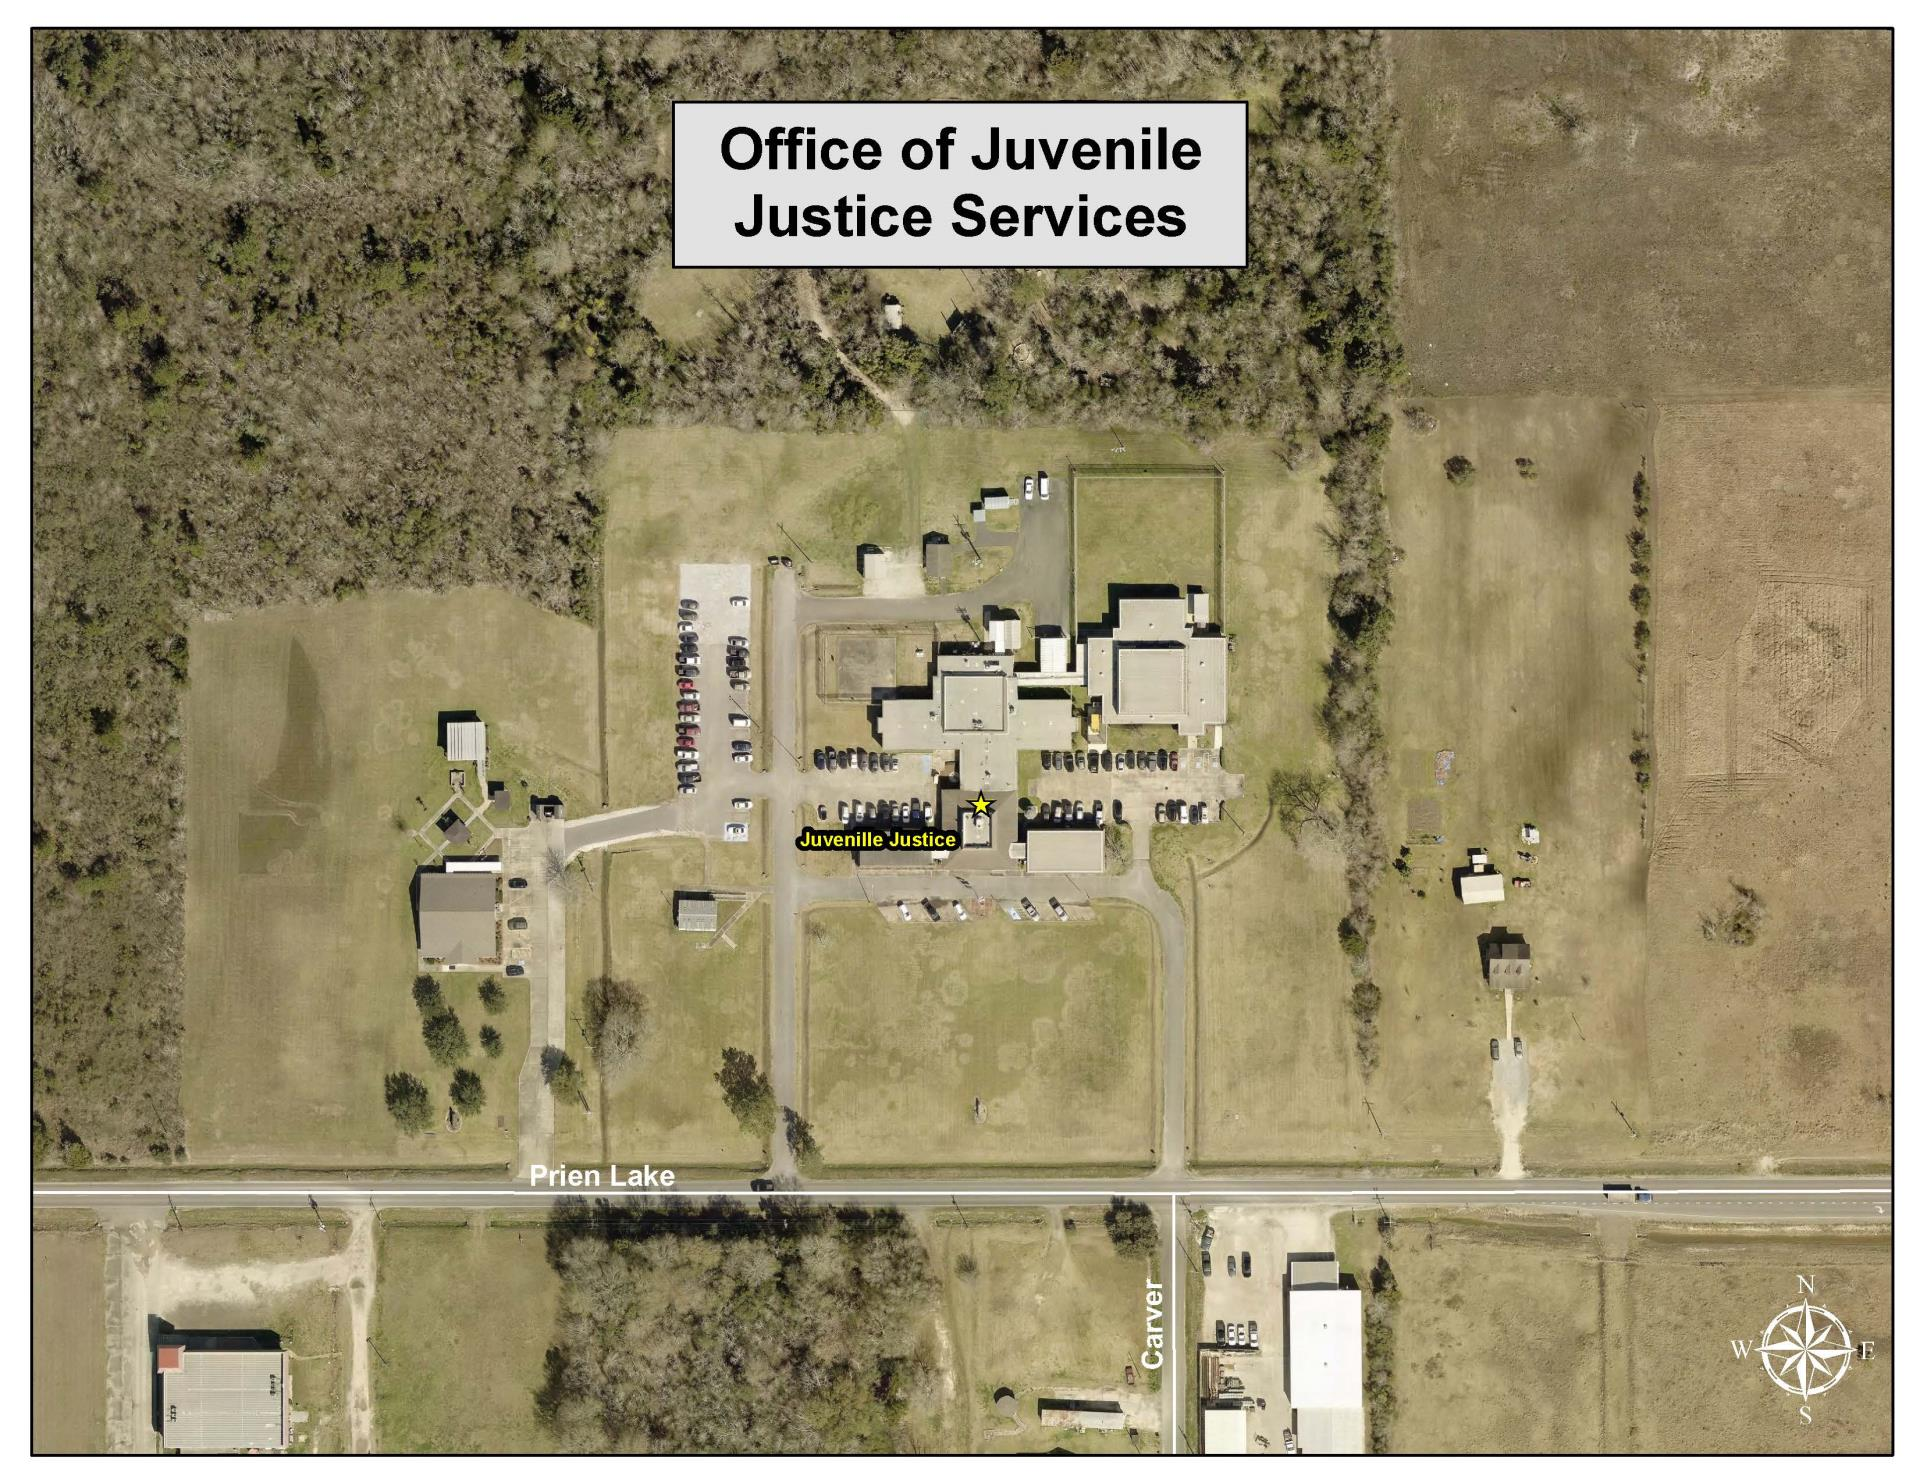 Calcasieu Parish Juvenile Justice Services